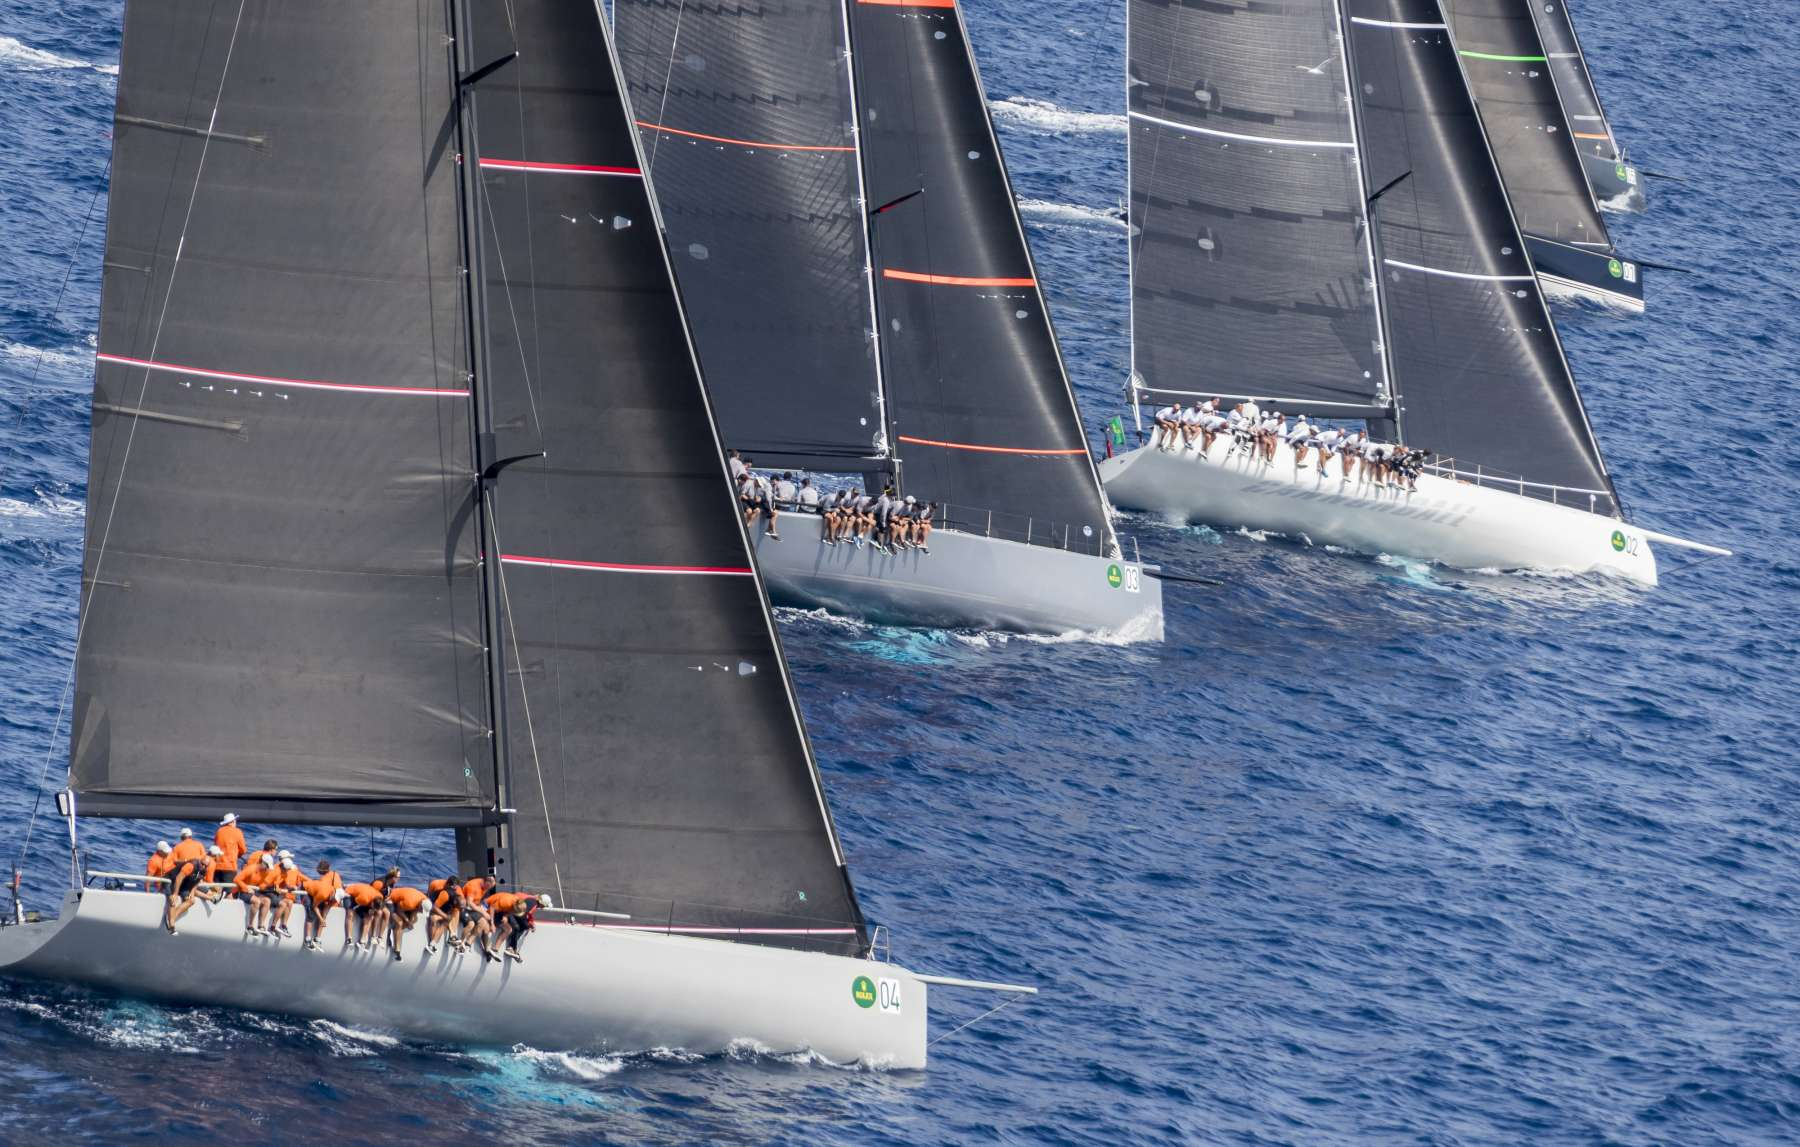 Maxi Yacht Rolex Cup & Rolex Maxi 72 Worlds - Images race Final Day online - NEWS - Yacht Club Costa Smeralda